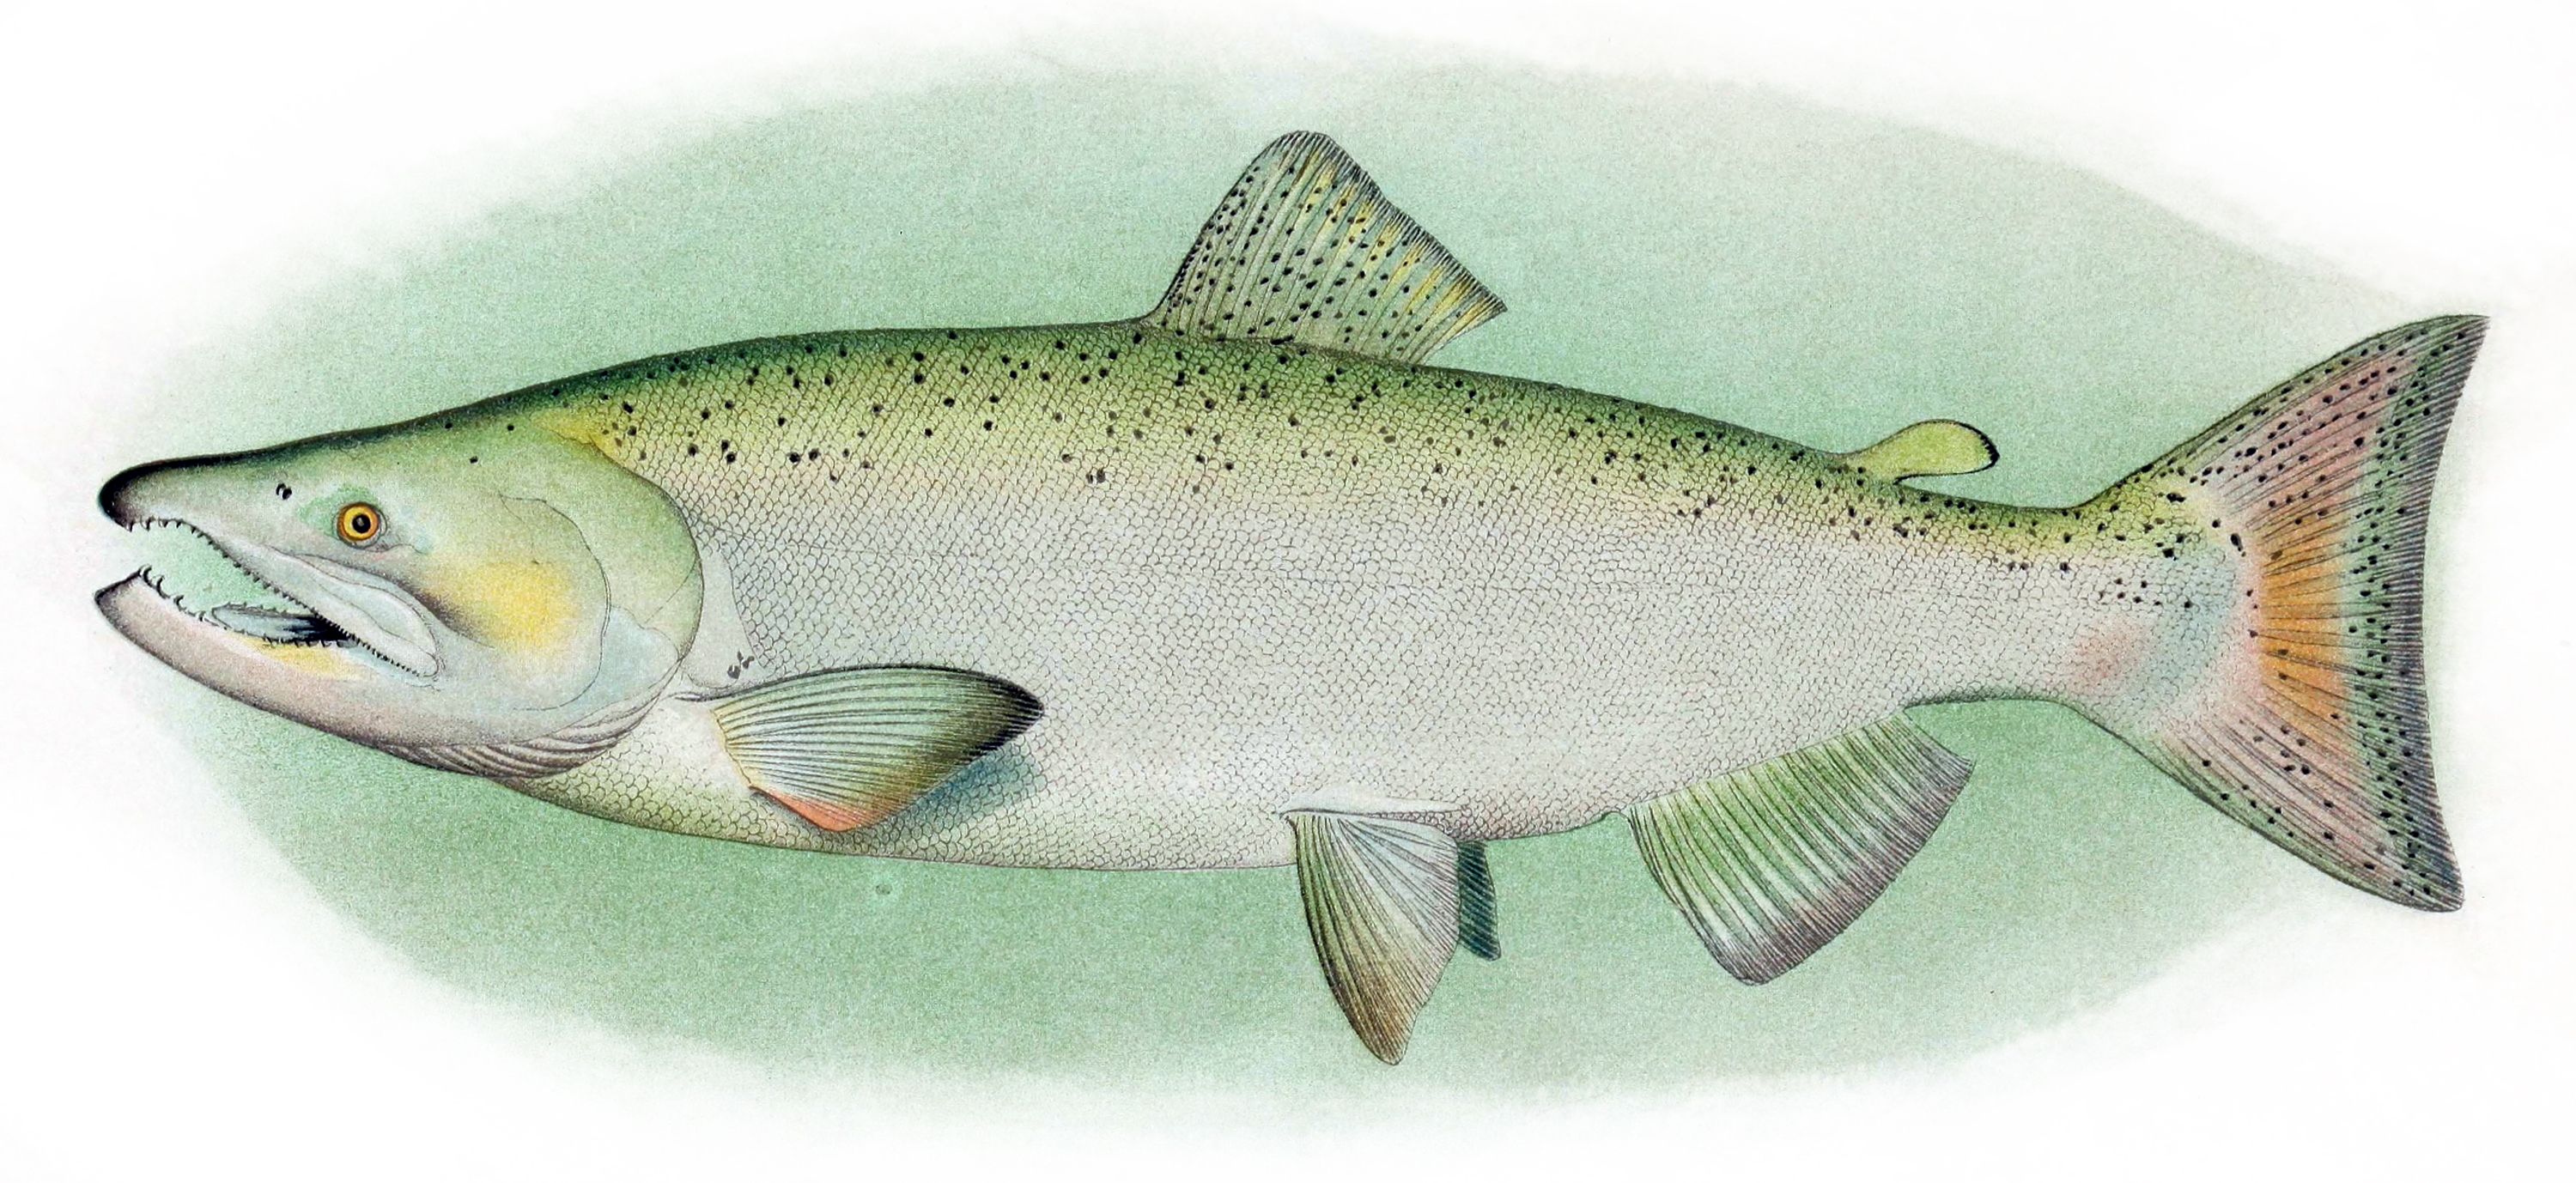 Chinook salmon - Wikipedia